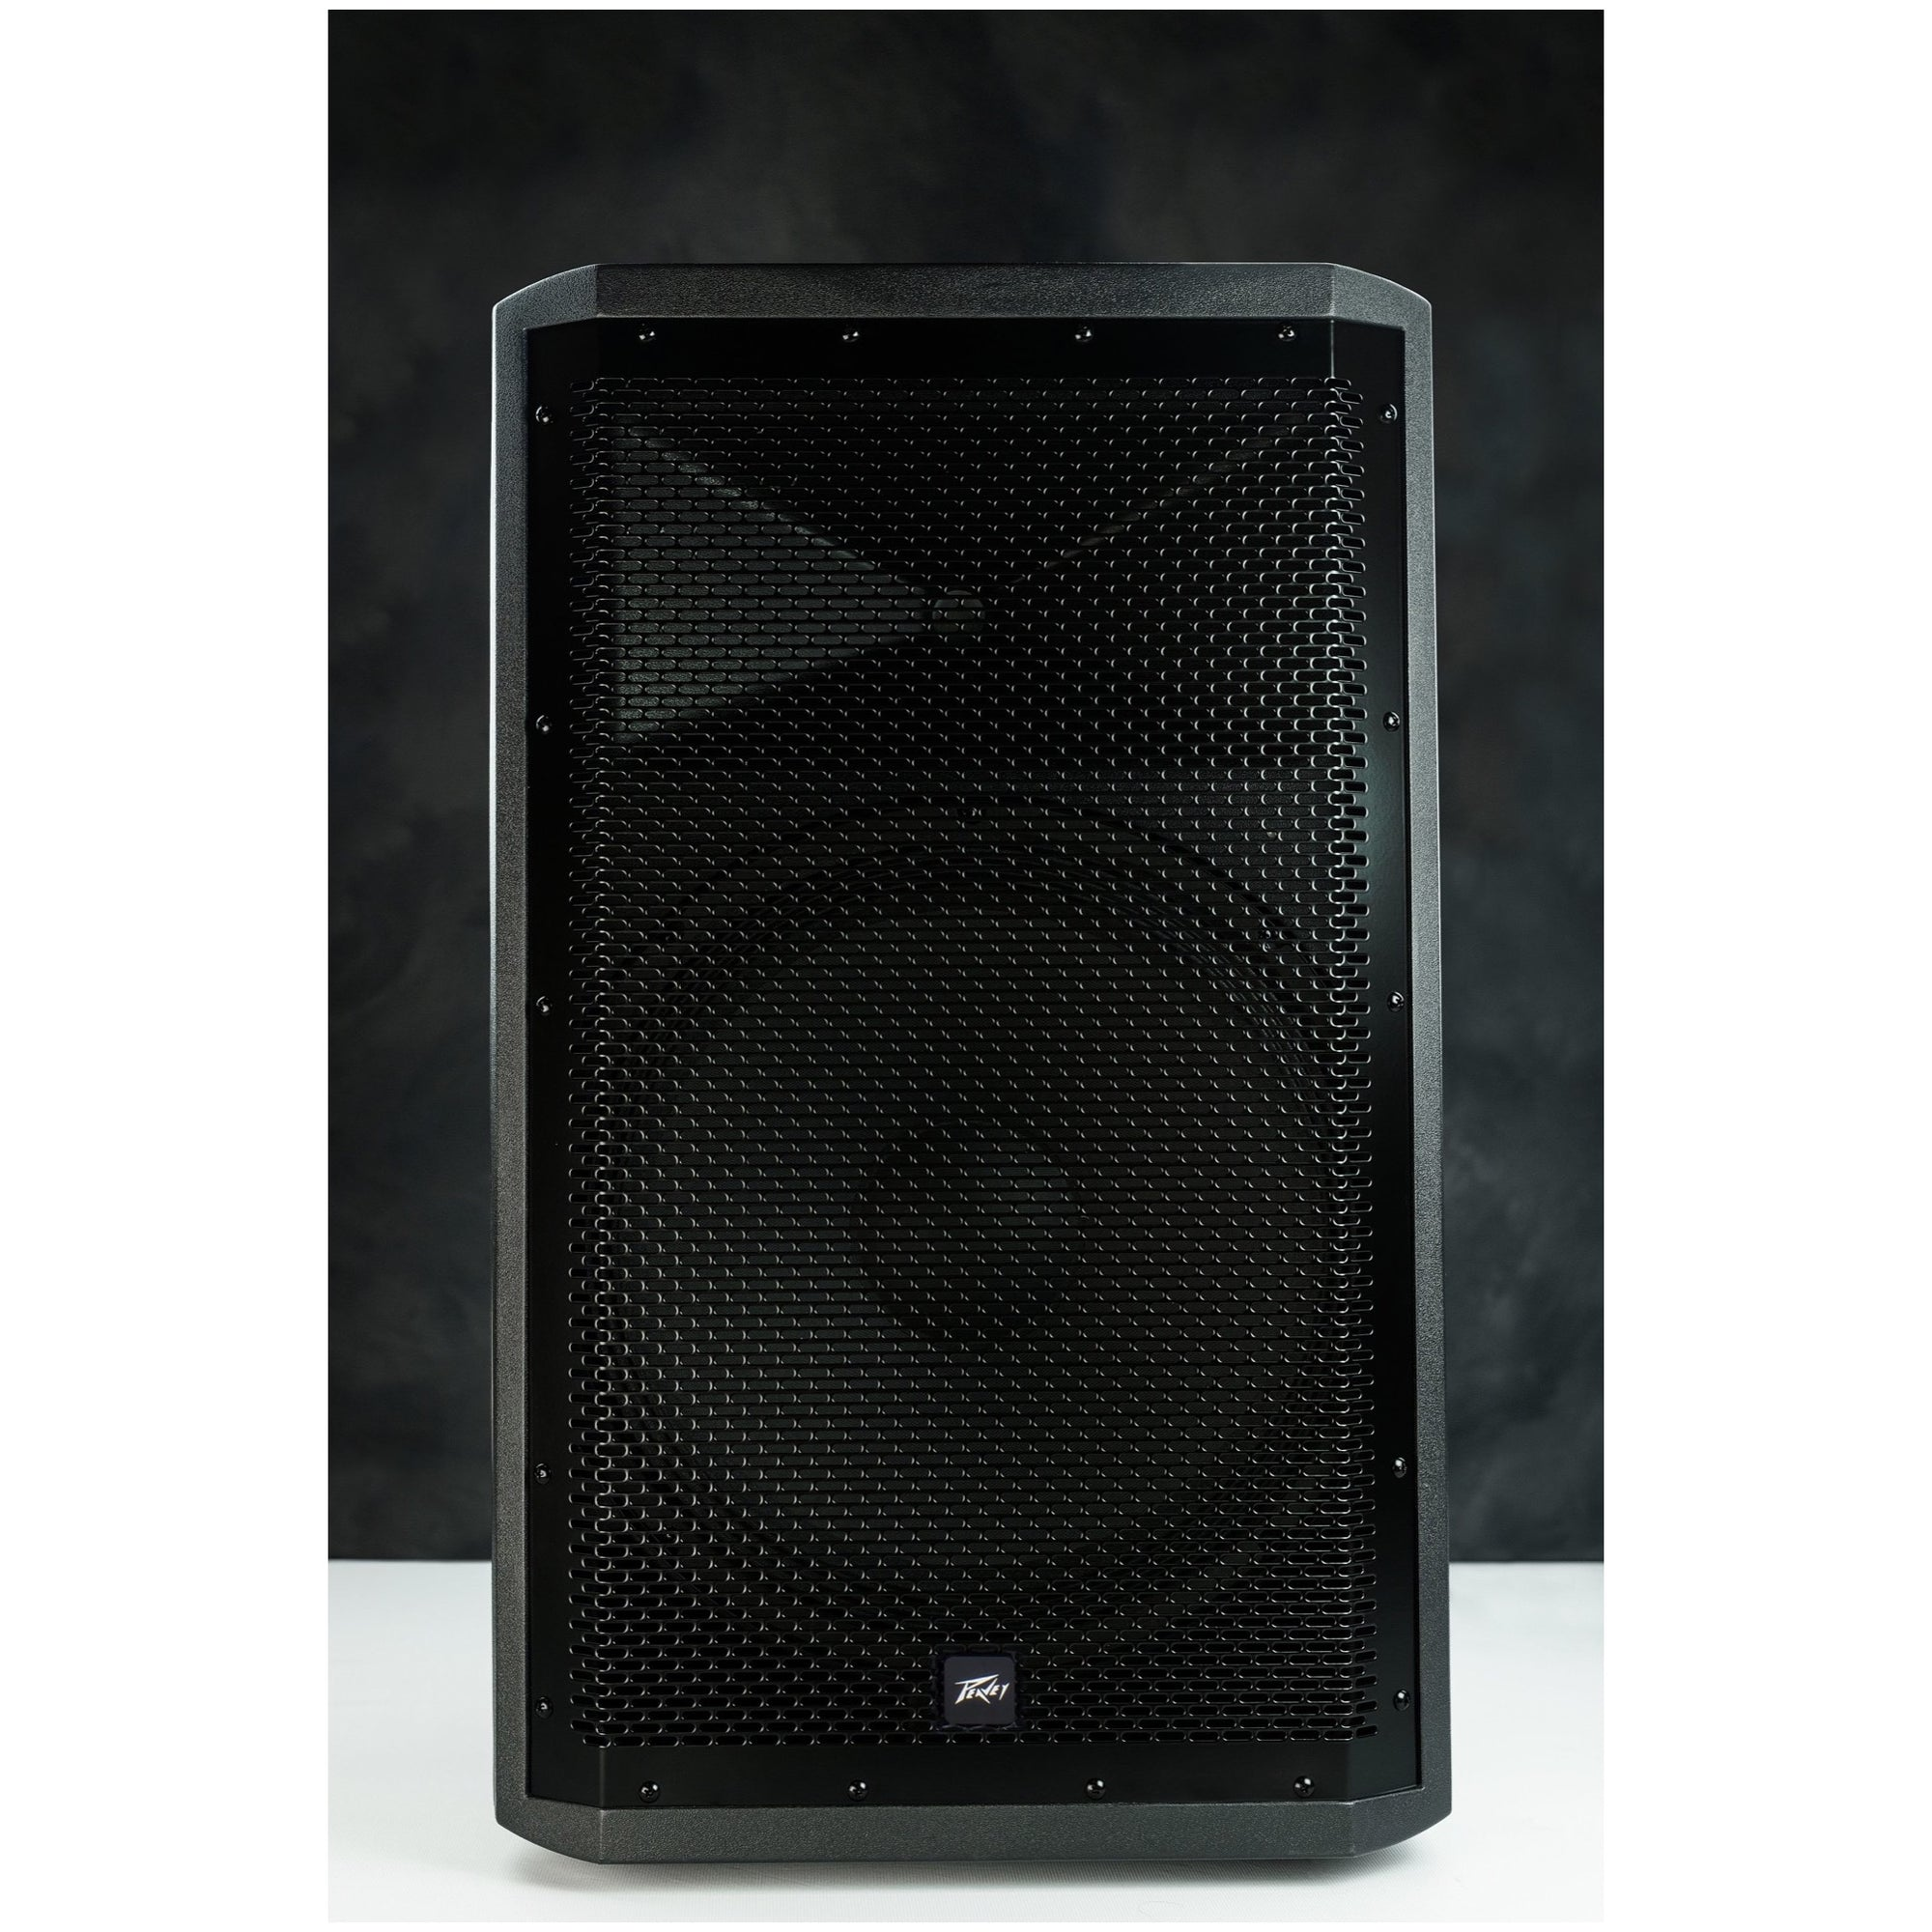 Peavey Impulse 1012 Passive, Unpowered PA Speaker (12 Inch), Black, 8 Ohms